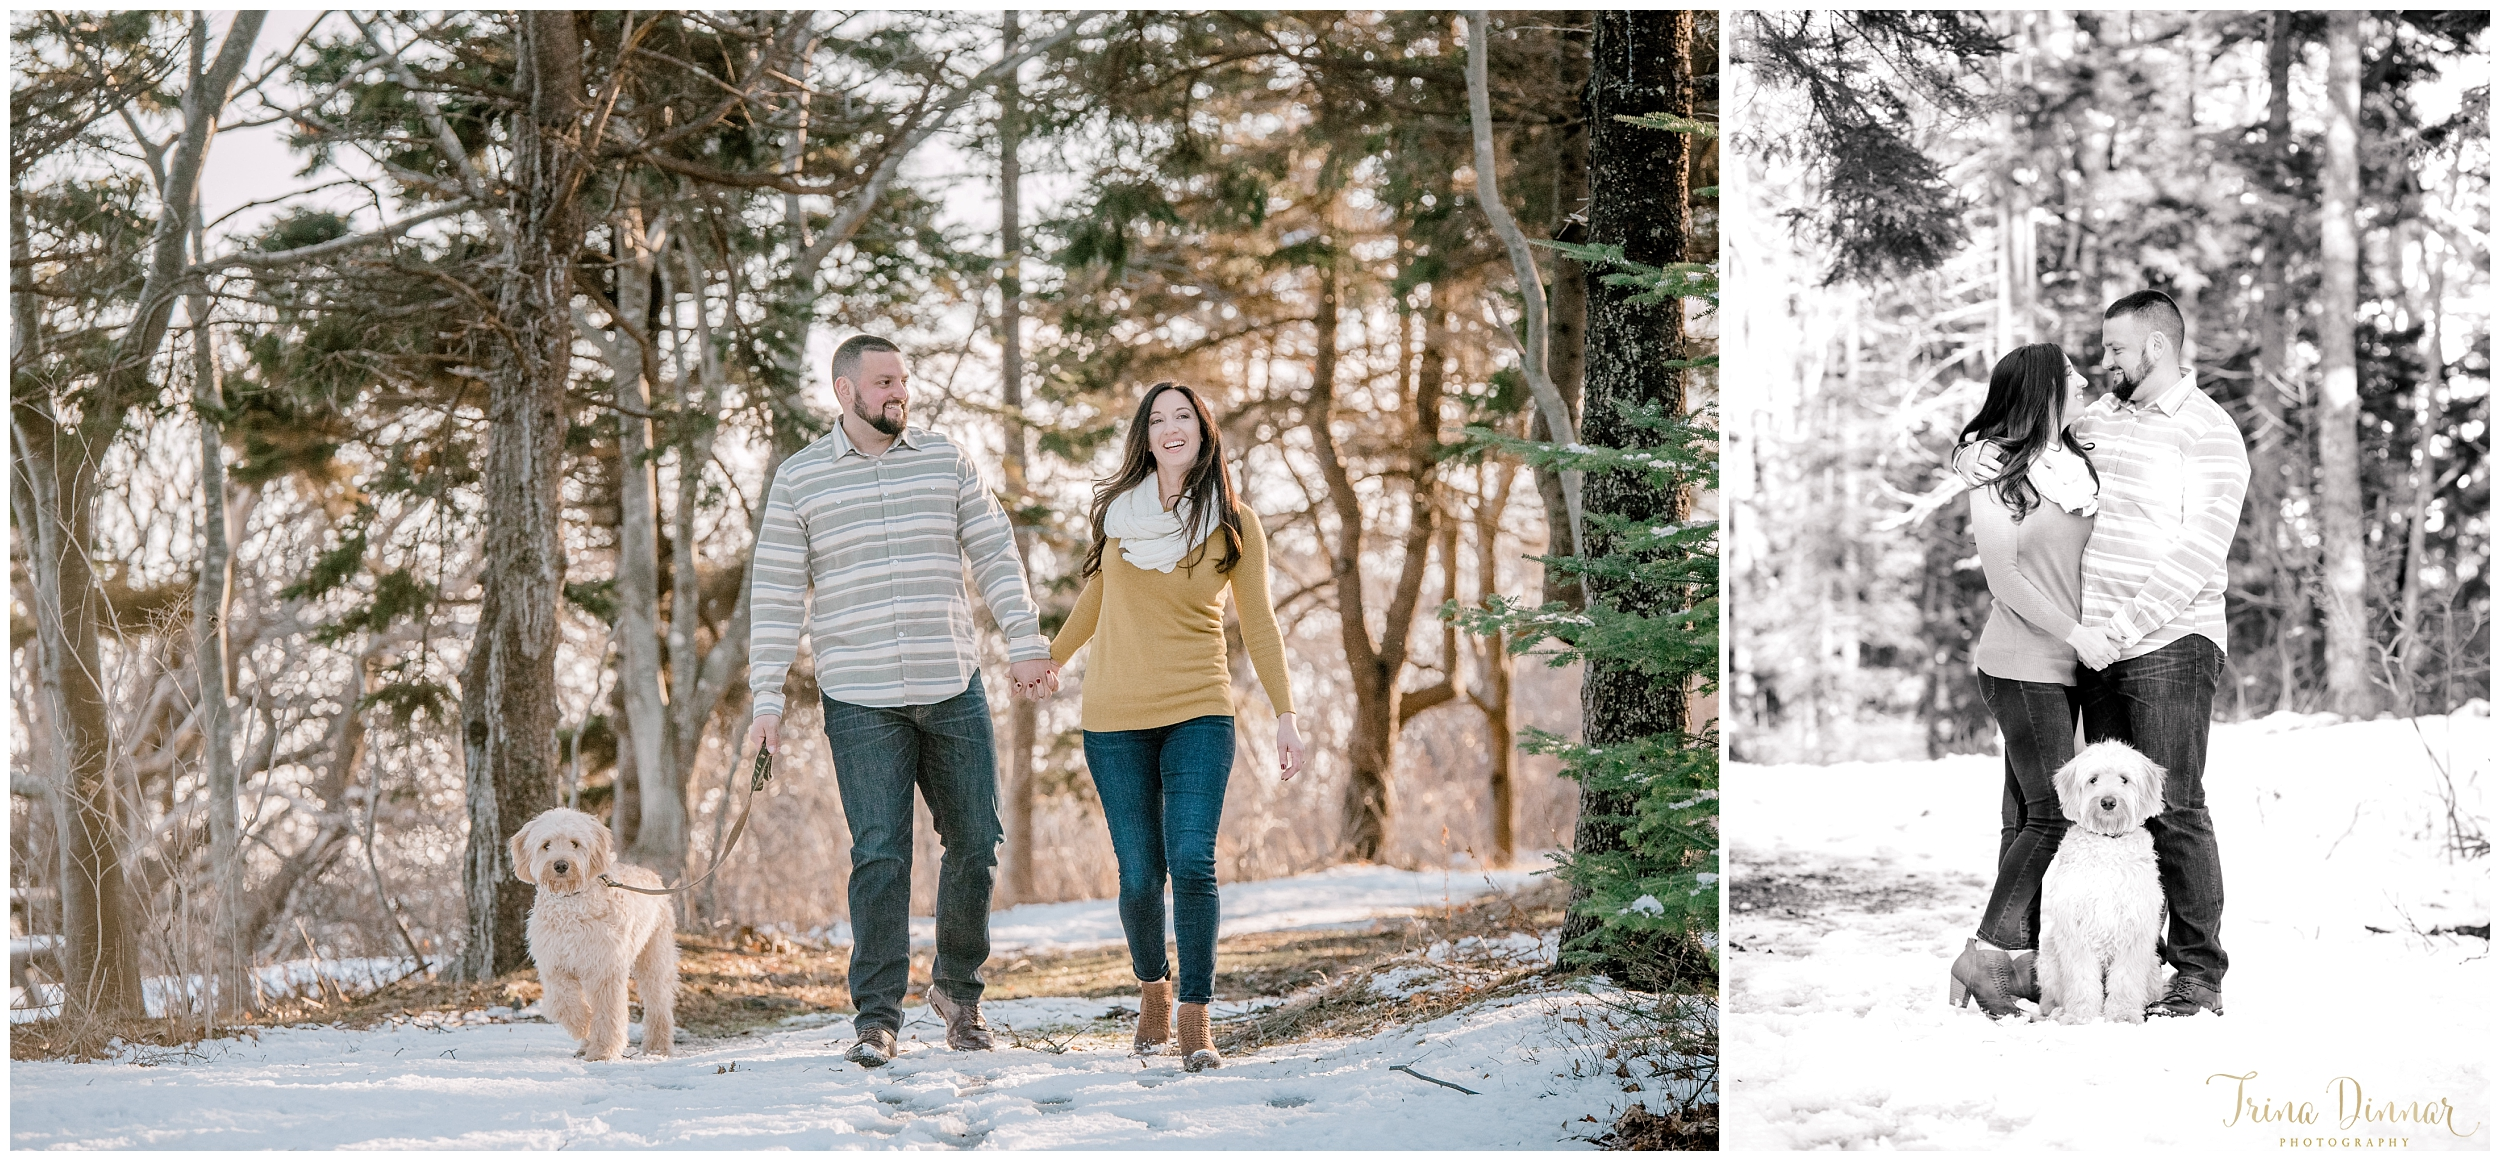 Engagement portraits in Maine with Goldendoodle.